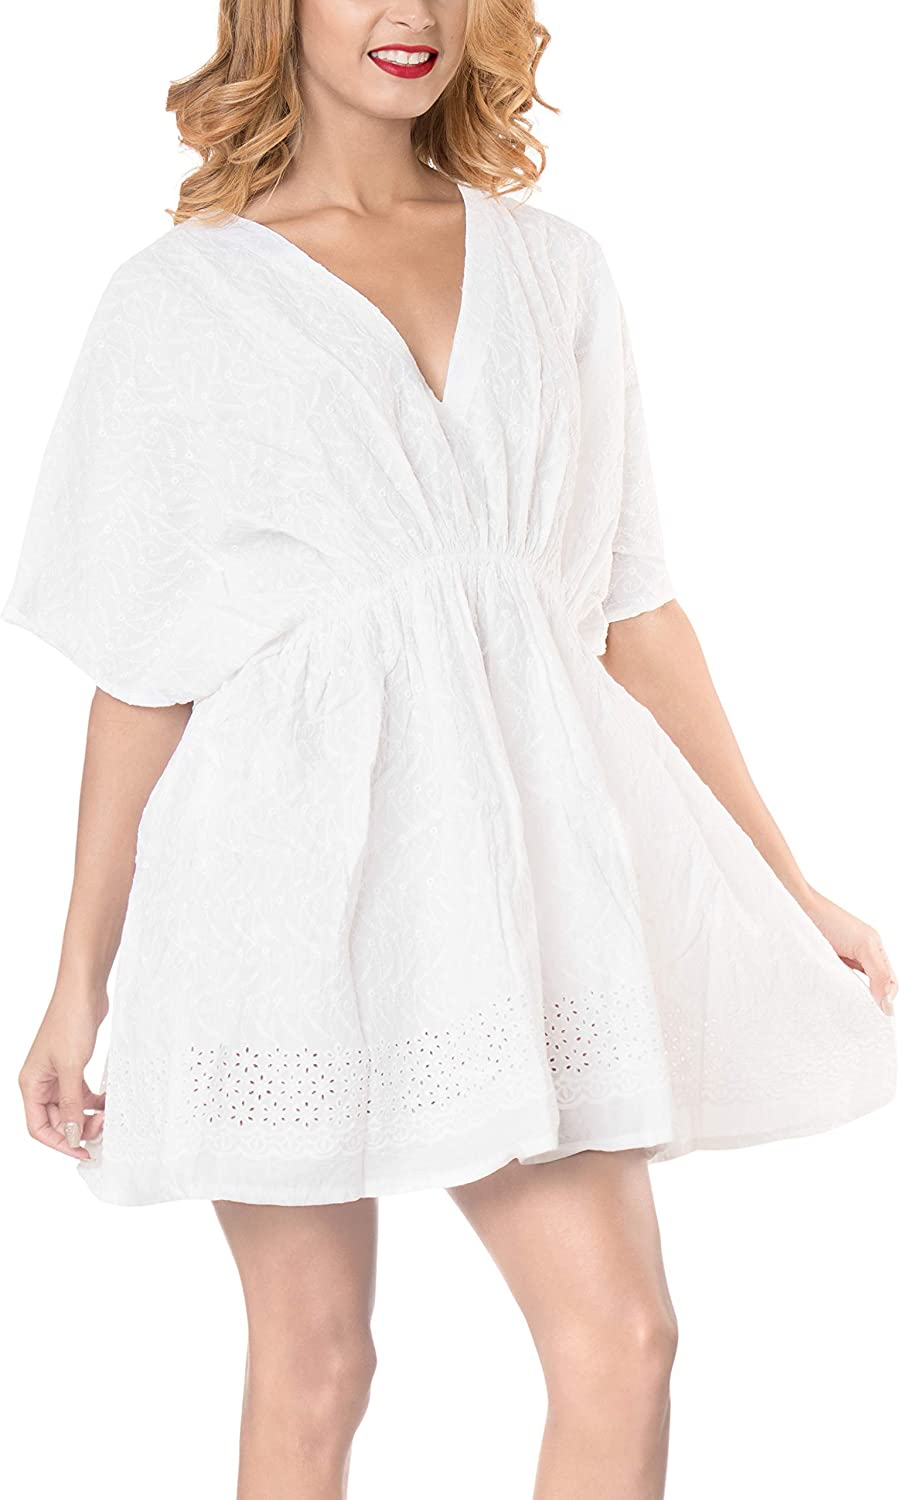 LA LEELA Women's Plus Size Summer Casual Dresses Swimsuit Cover Ups Embroidered